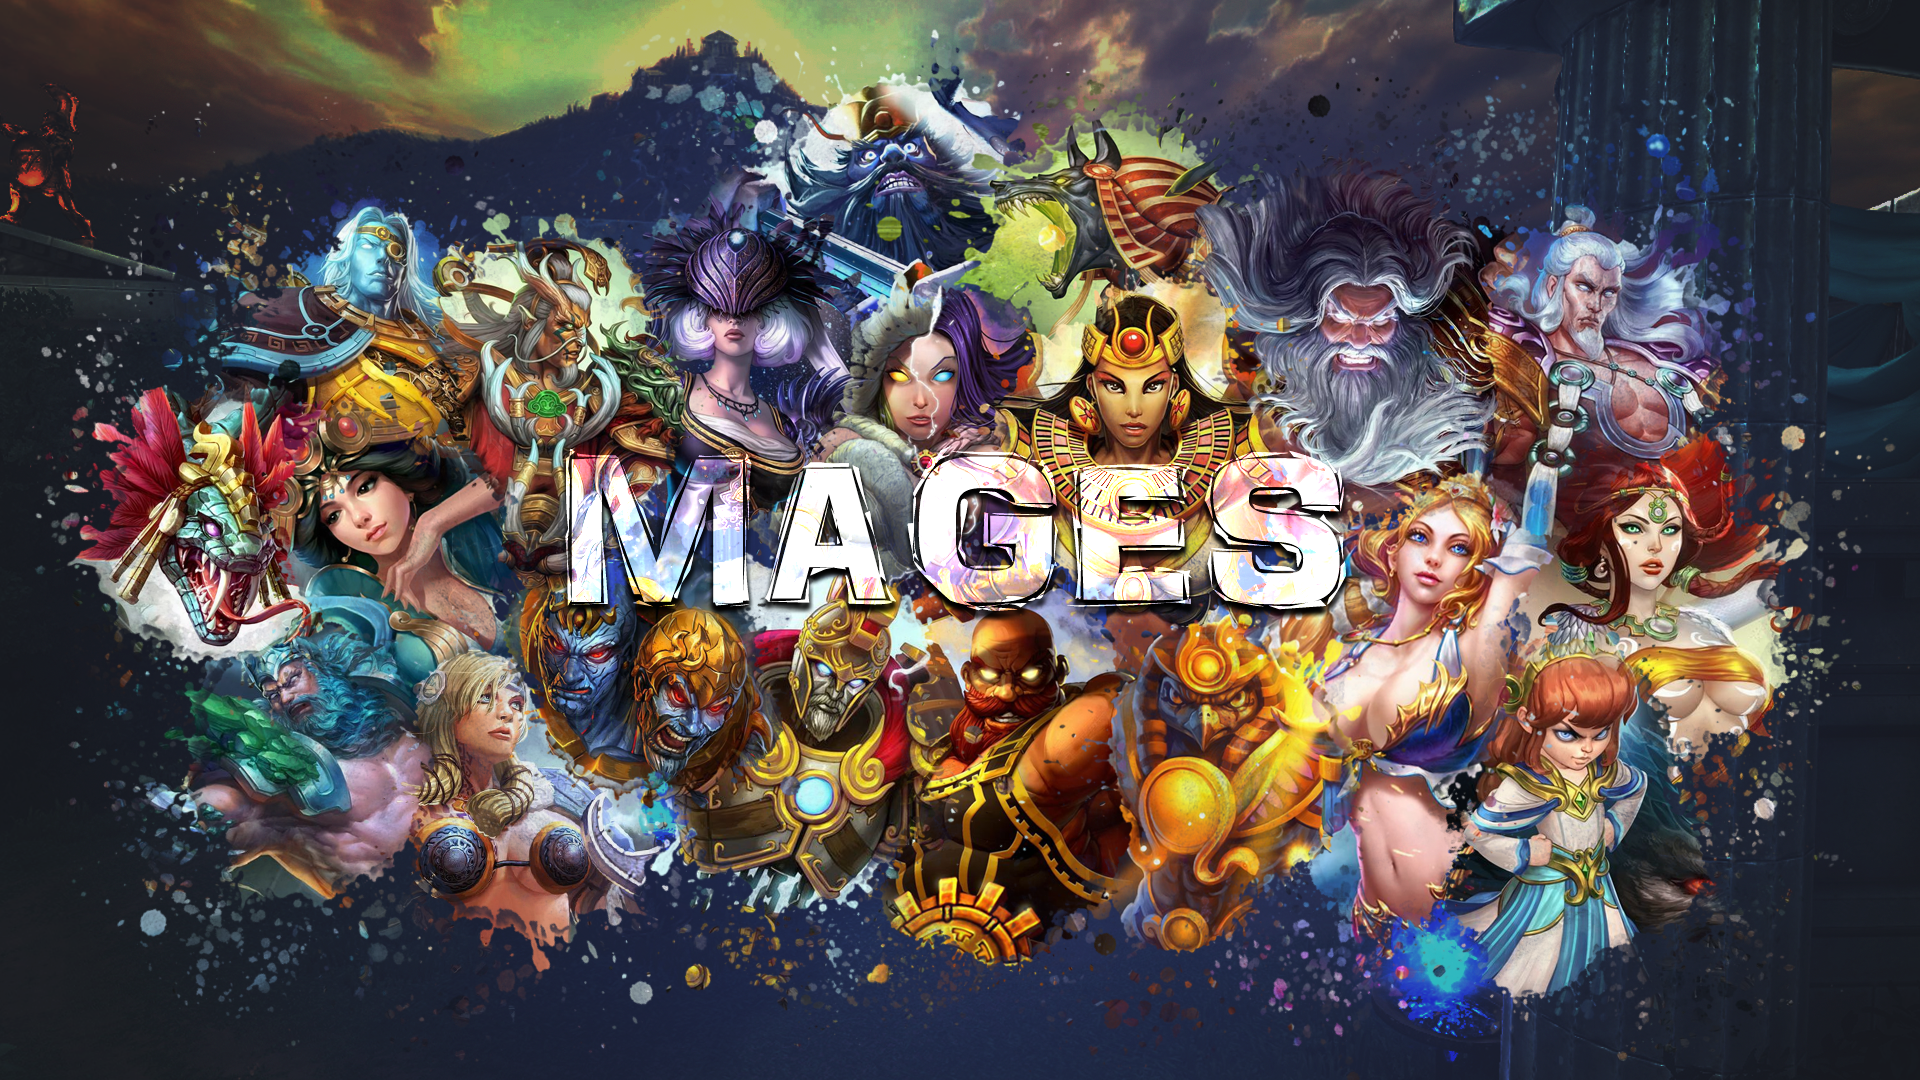 smite mages wallpaper nox edition by getsukeii watch fan art wallpaper 1920x1080